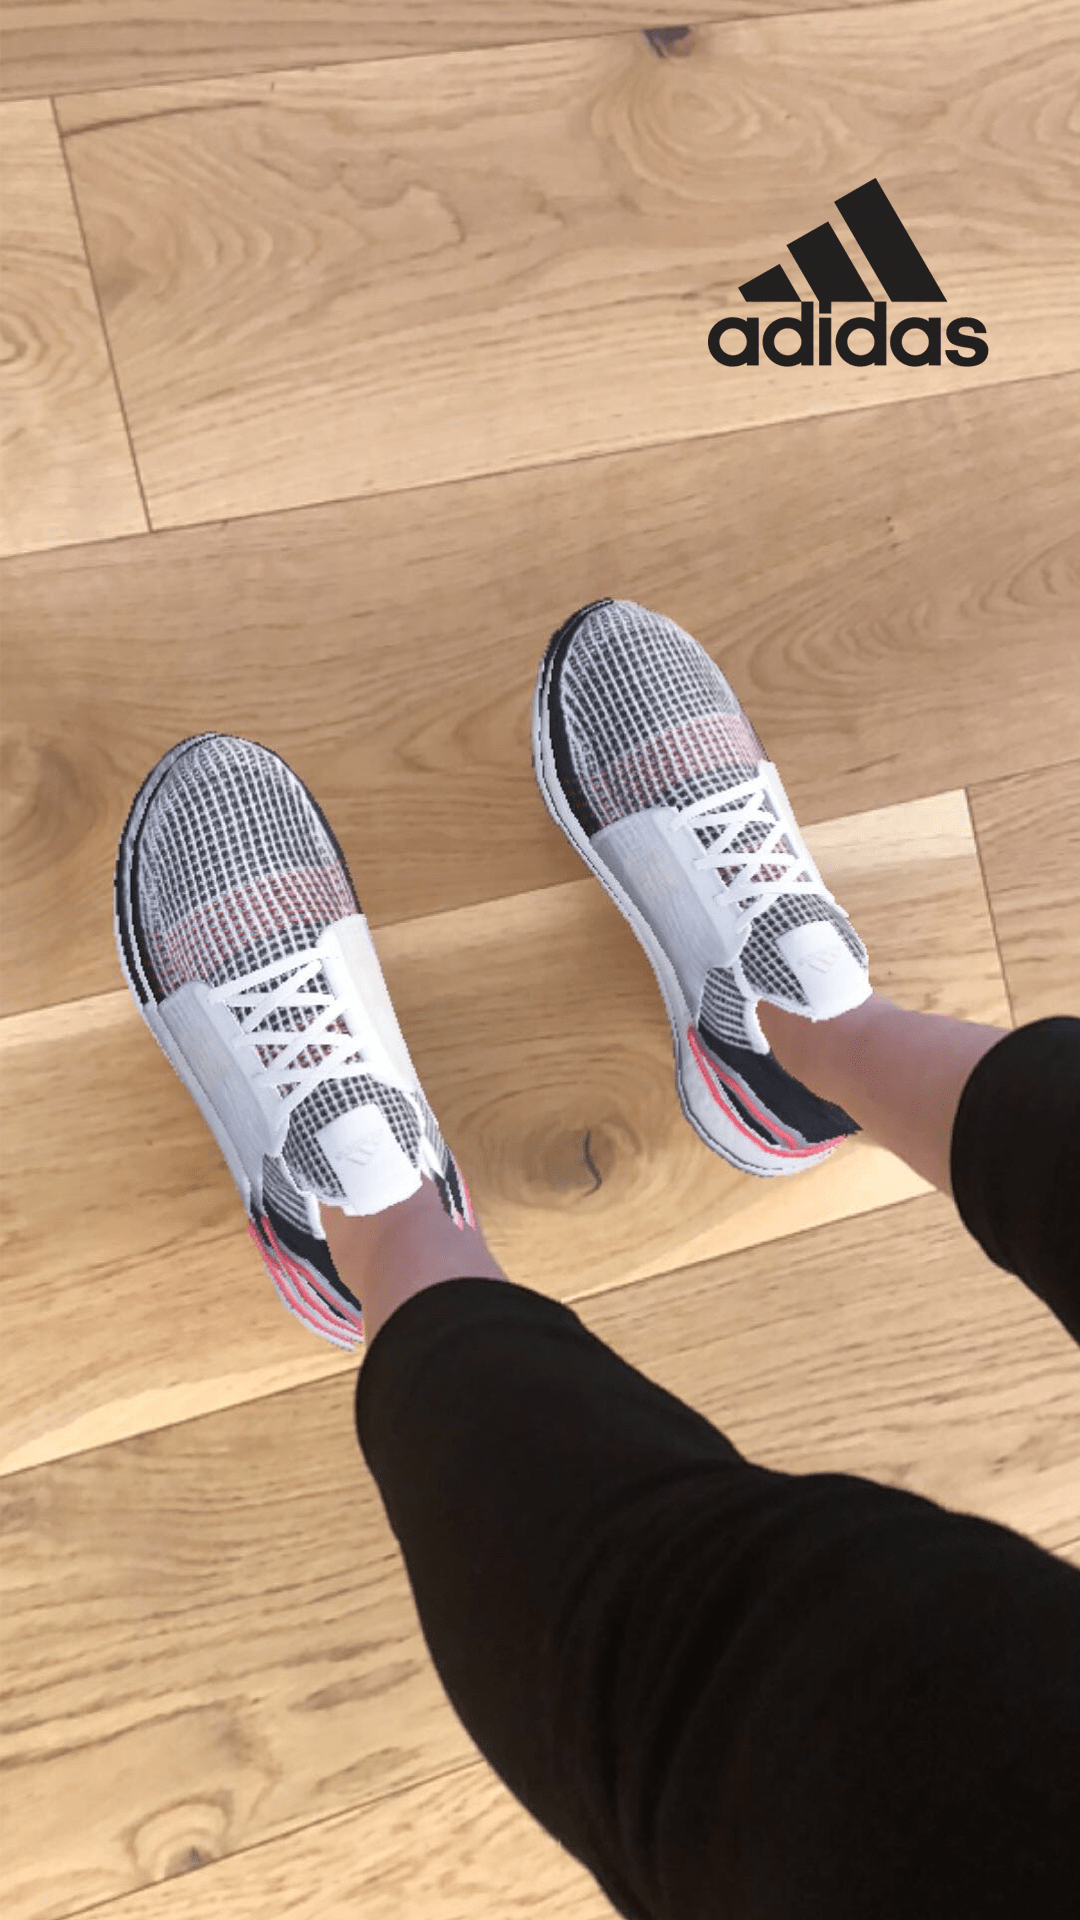 Adidas Ultraboost 19 try on